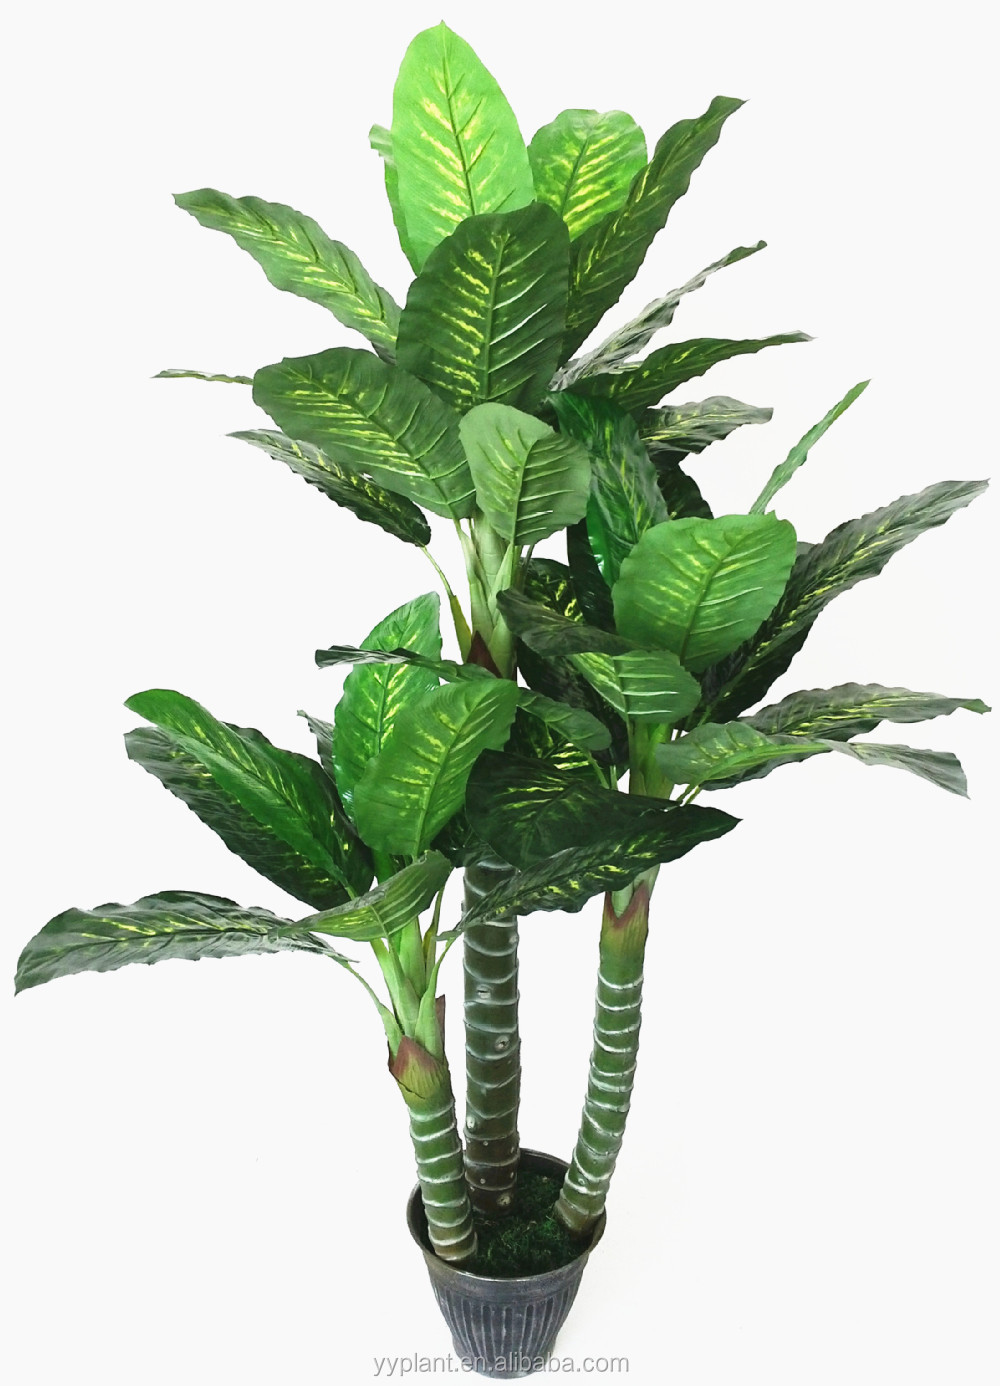 Diffenbachia Plant X 14 Lvs Home Decorative Green Leaves Outdoor ...